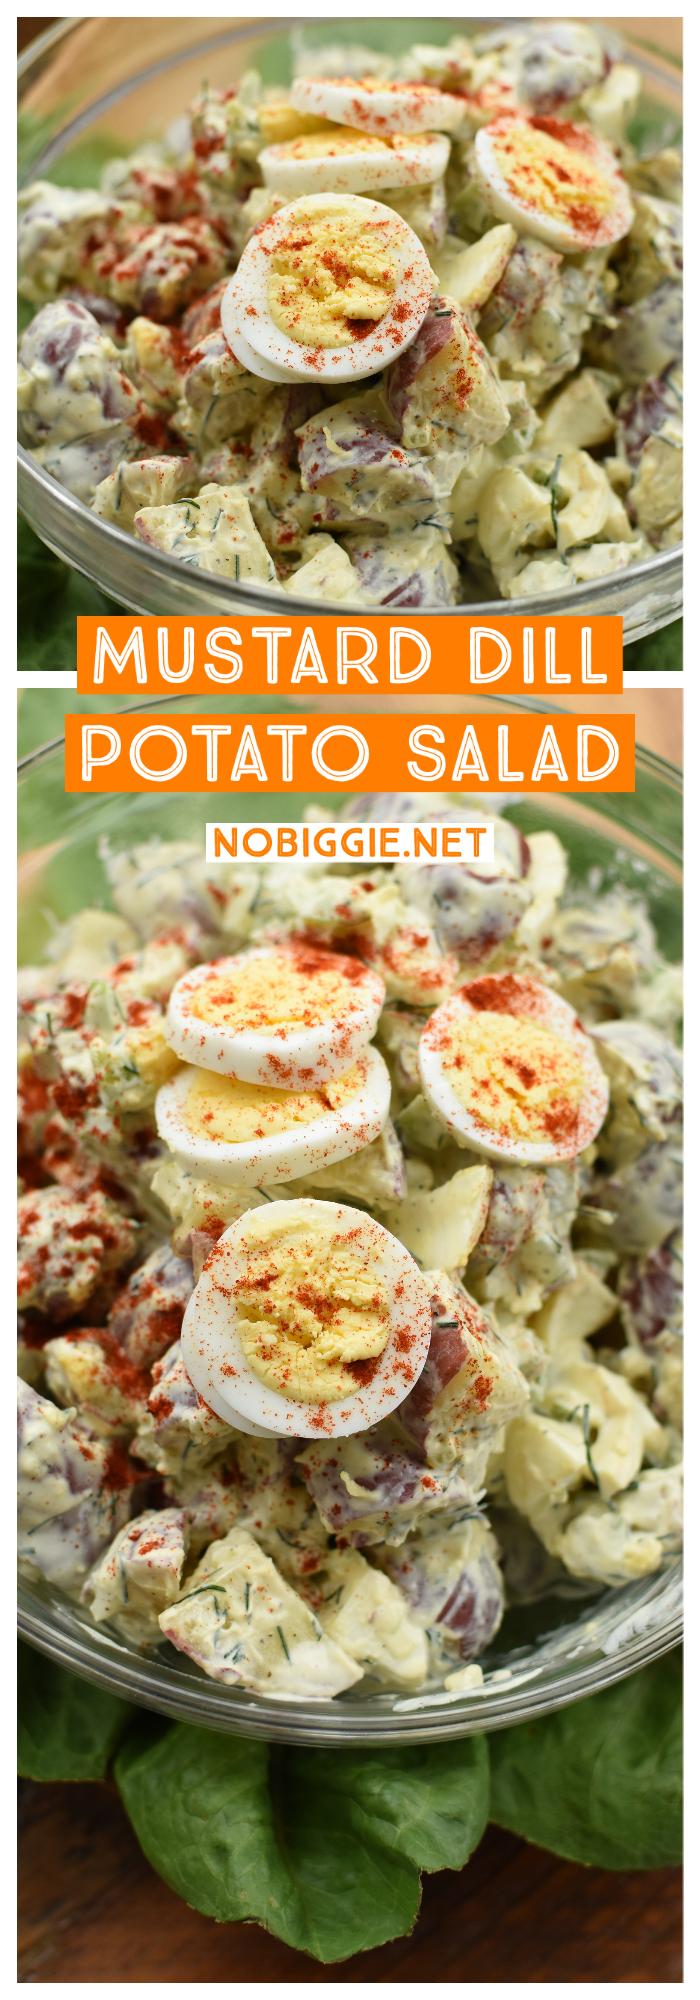 Mustard Dill Potato Salad